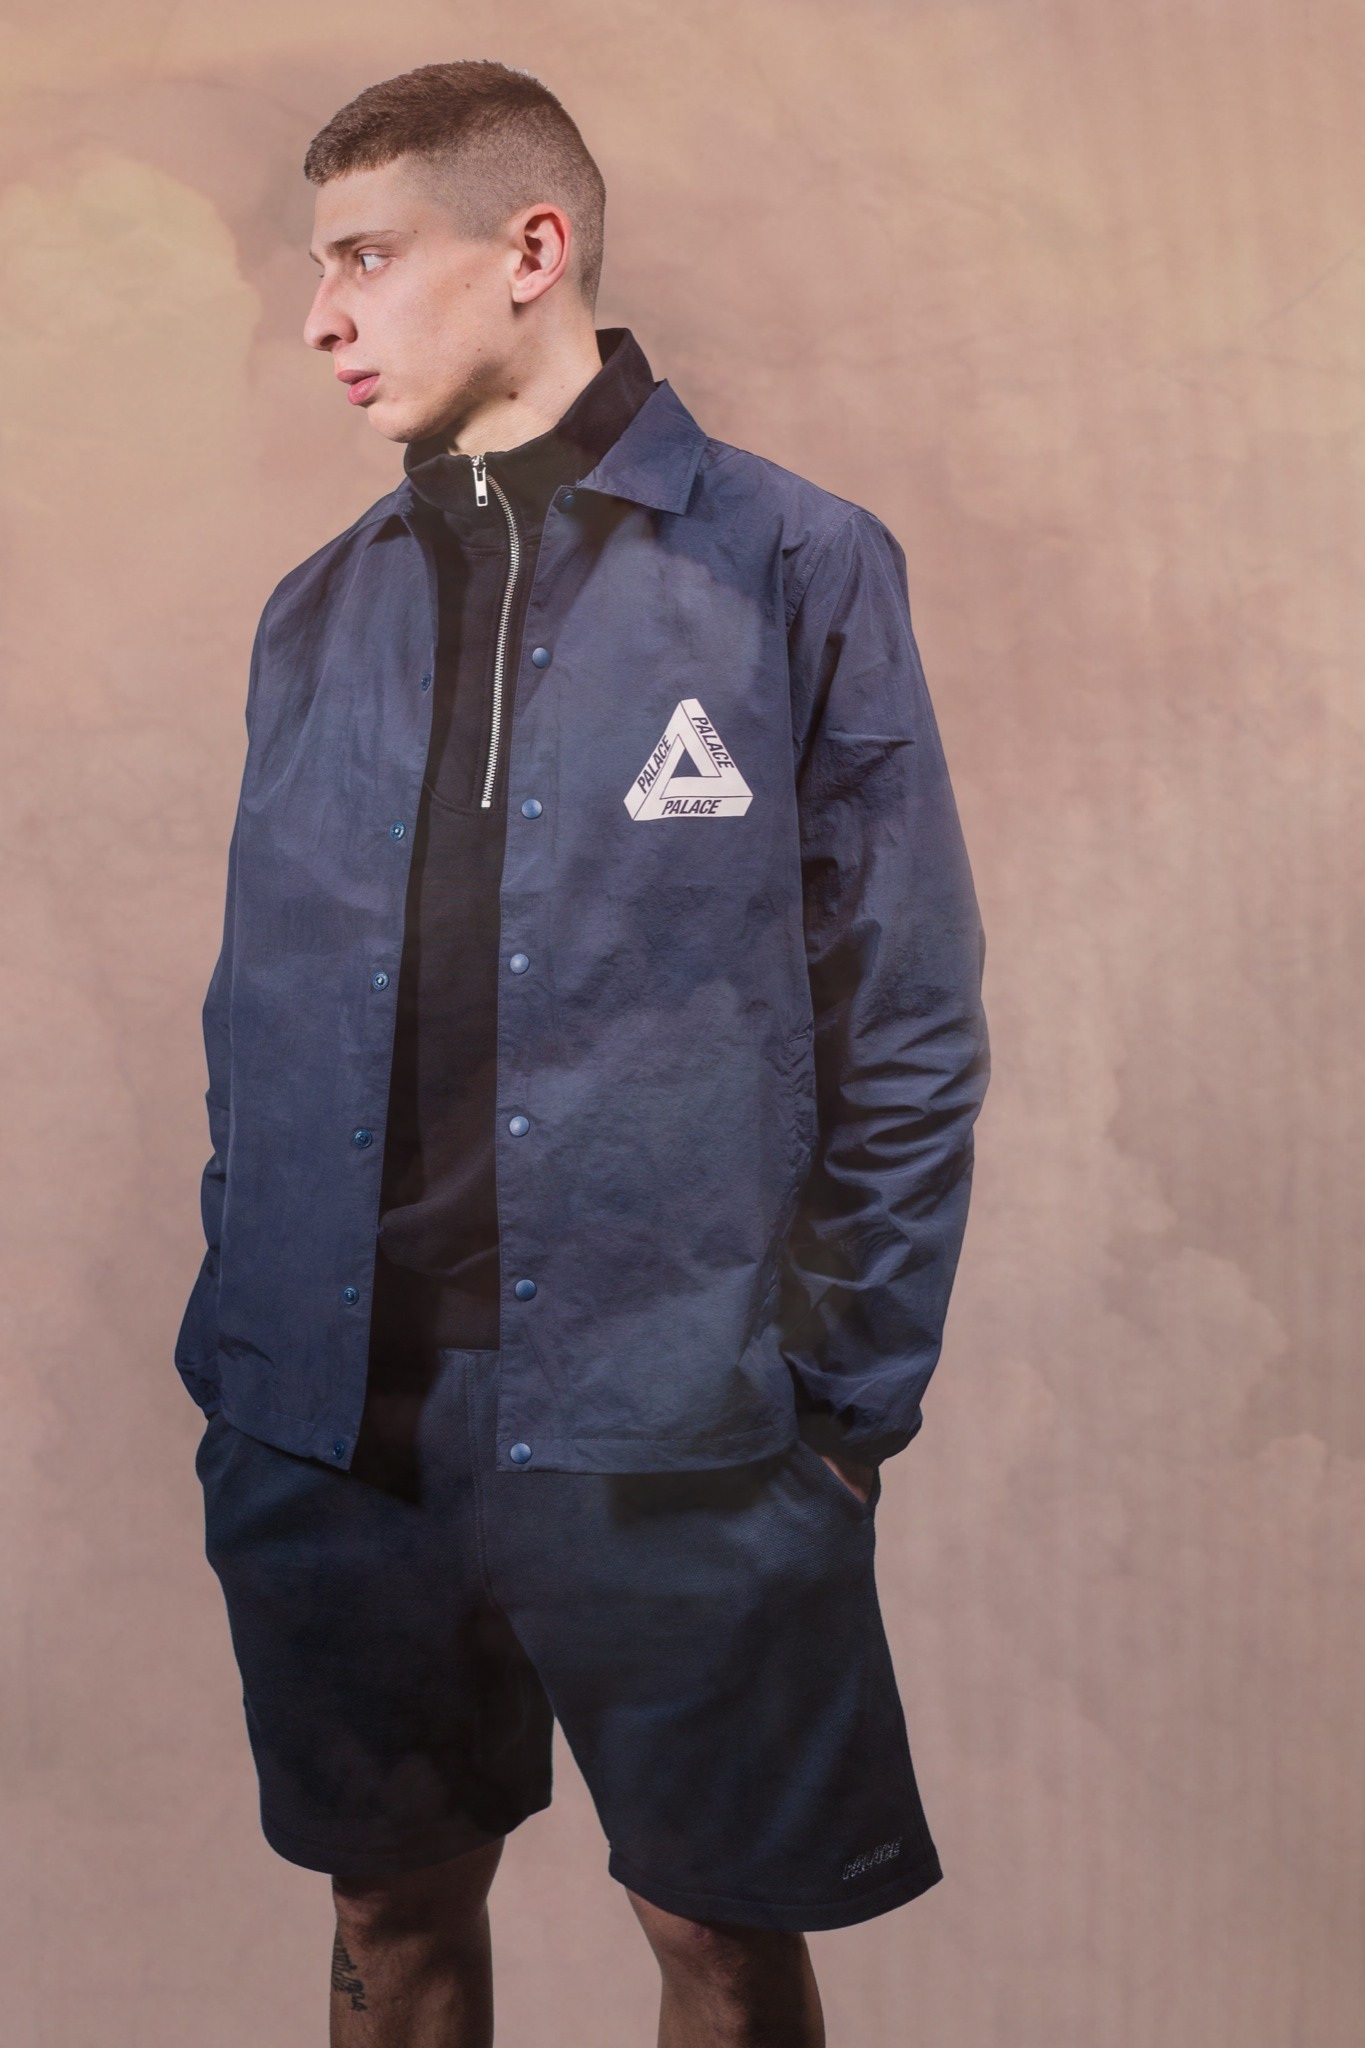 Palace Skateboards New Collection Amp Store In London